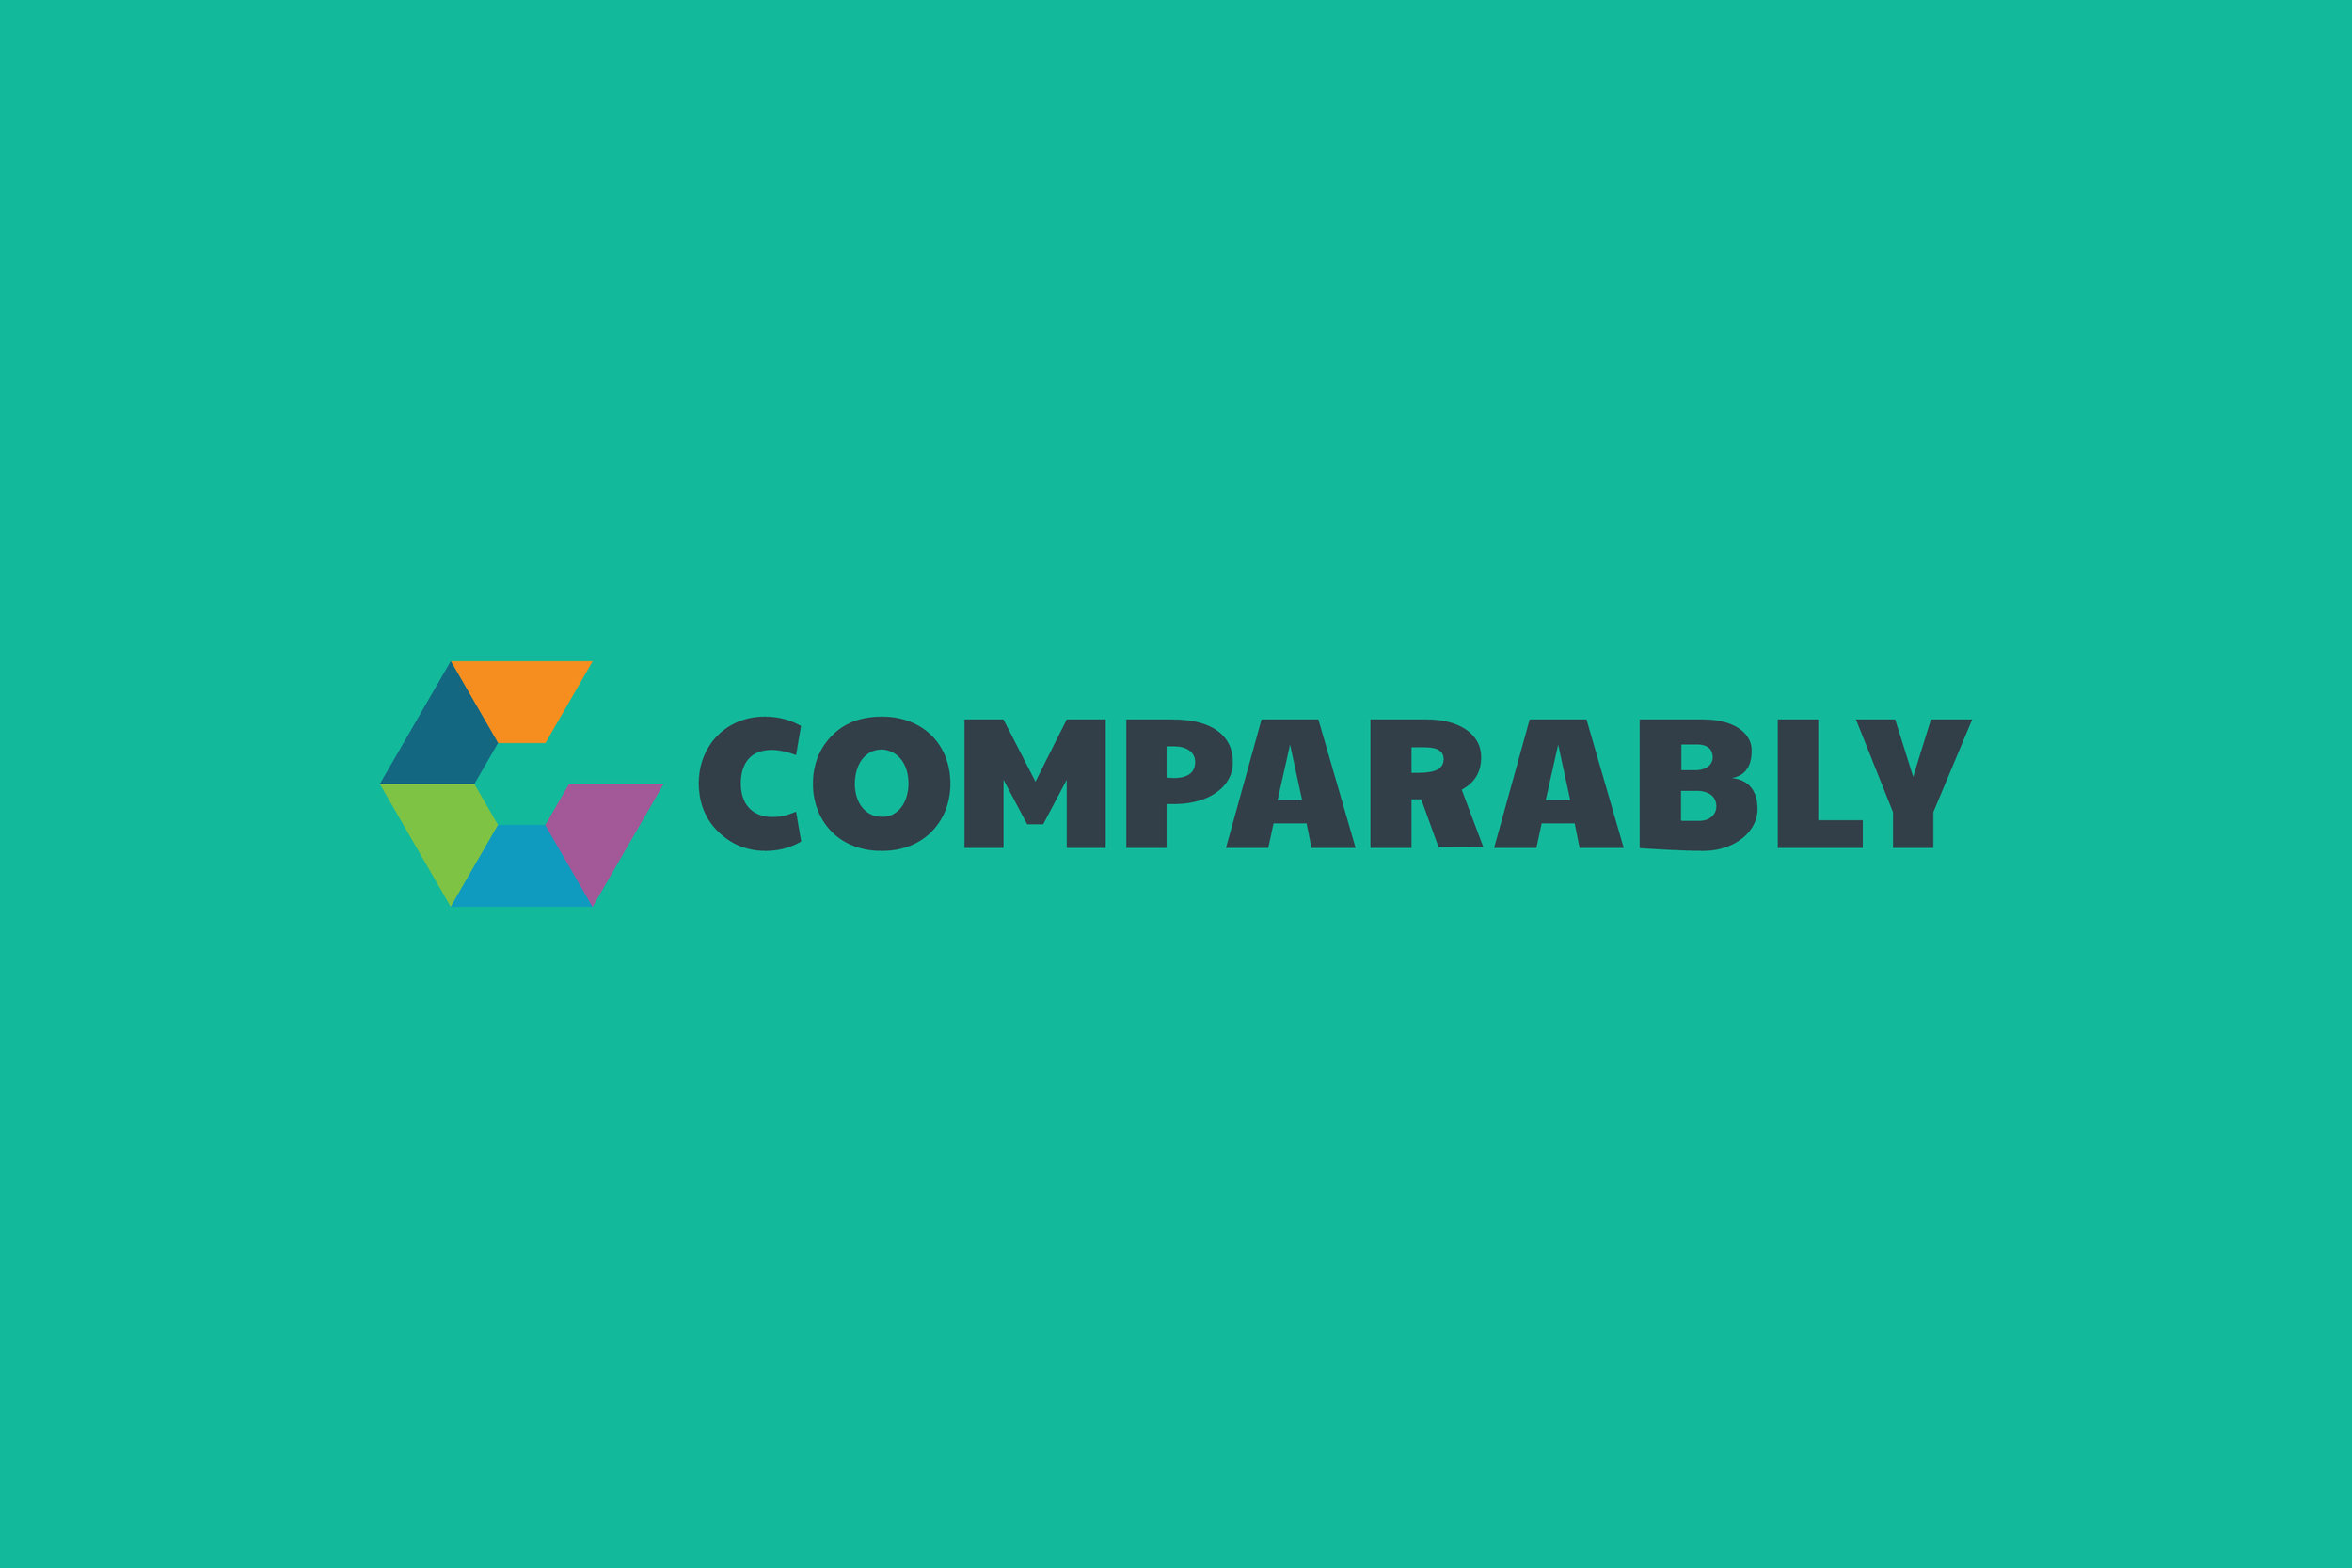 Comparably.jpeg